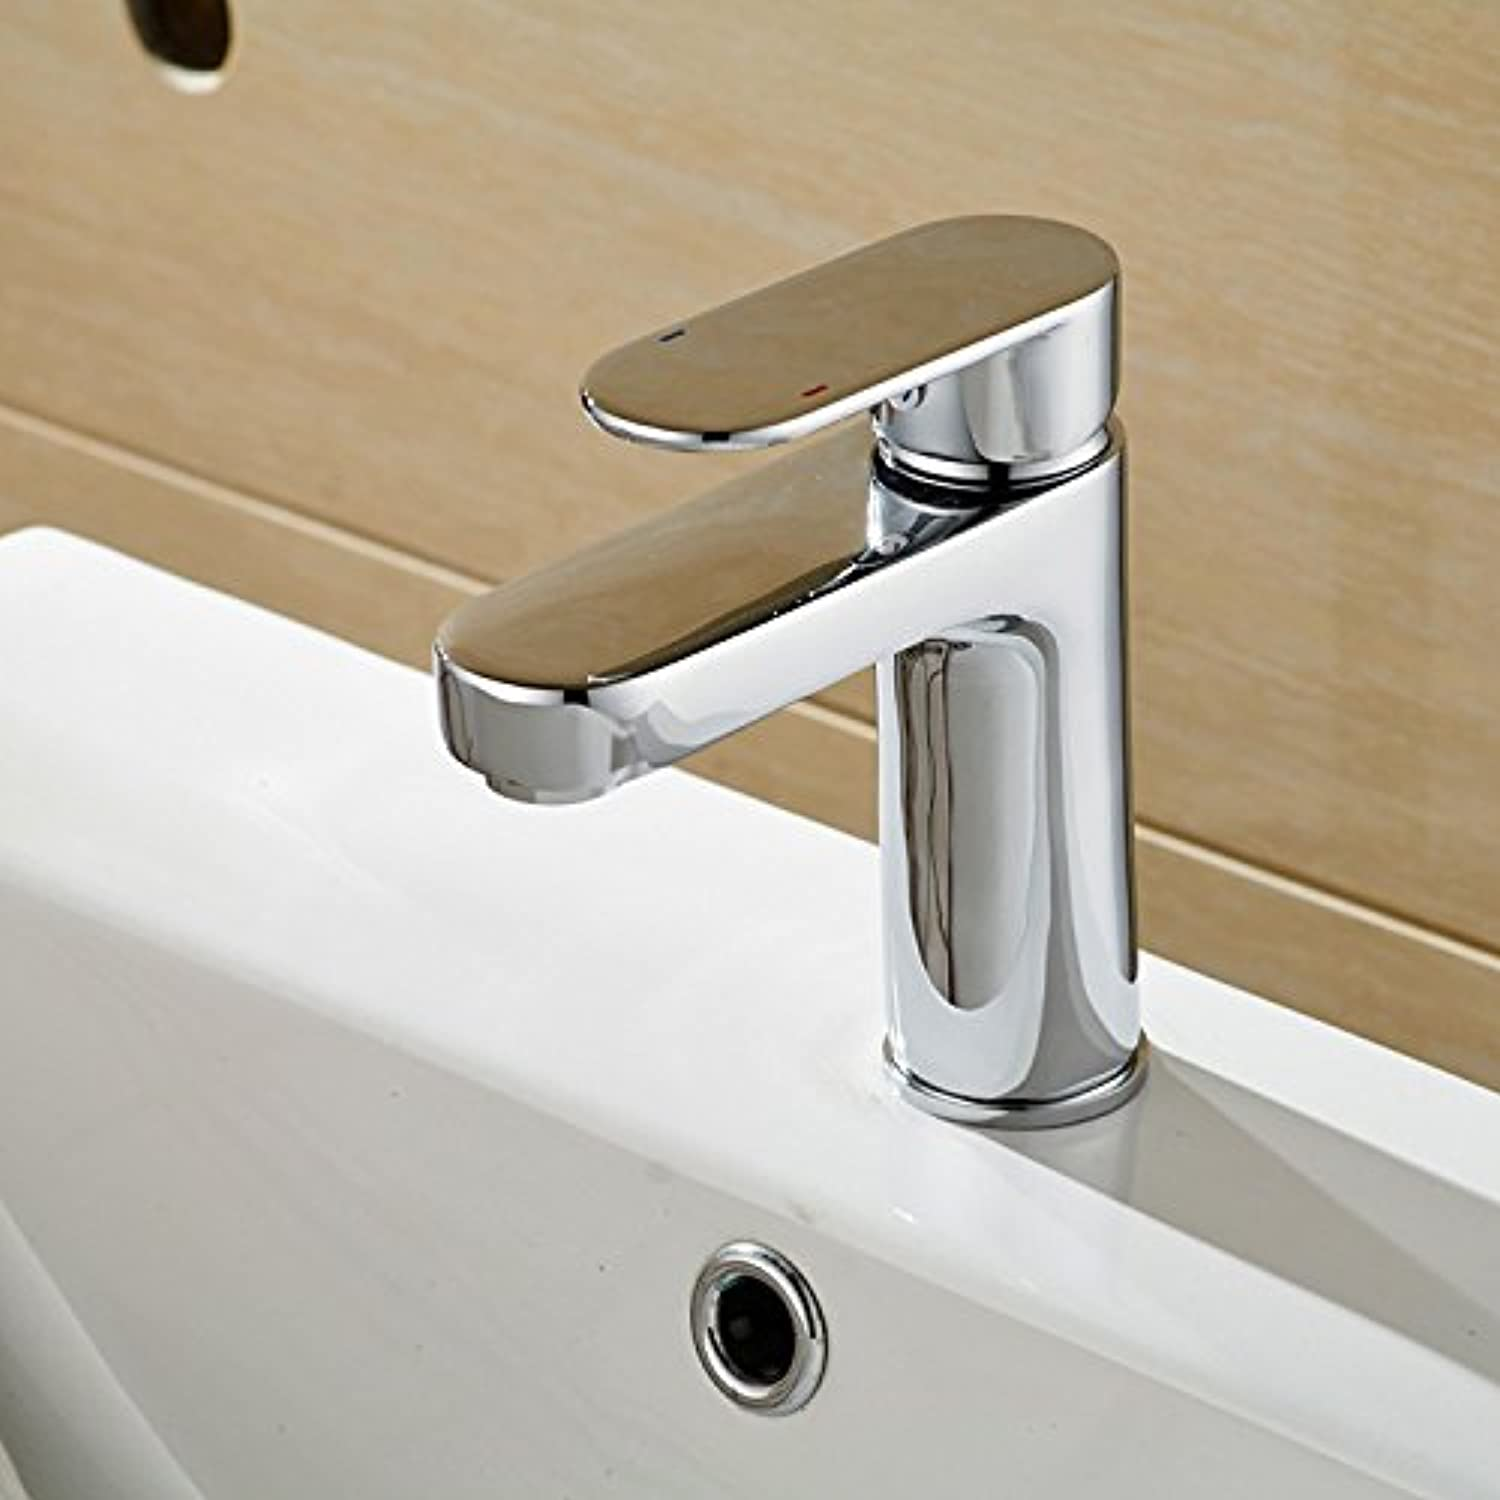 MDRW-Bathroom Accessories Basin Faucet Cu All Basin Taps Water-Cooled Heat Washbasin In The Mixed Household Water Taps Slot